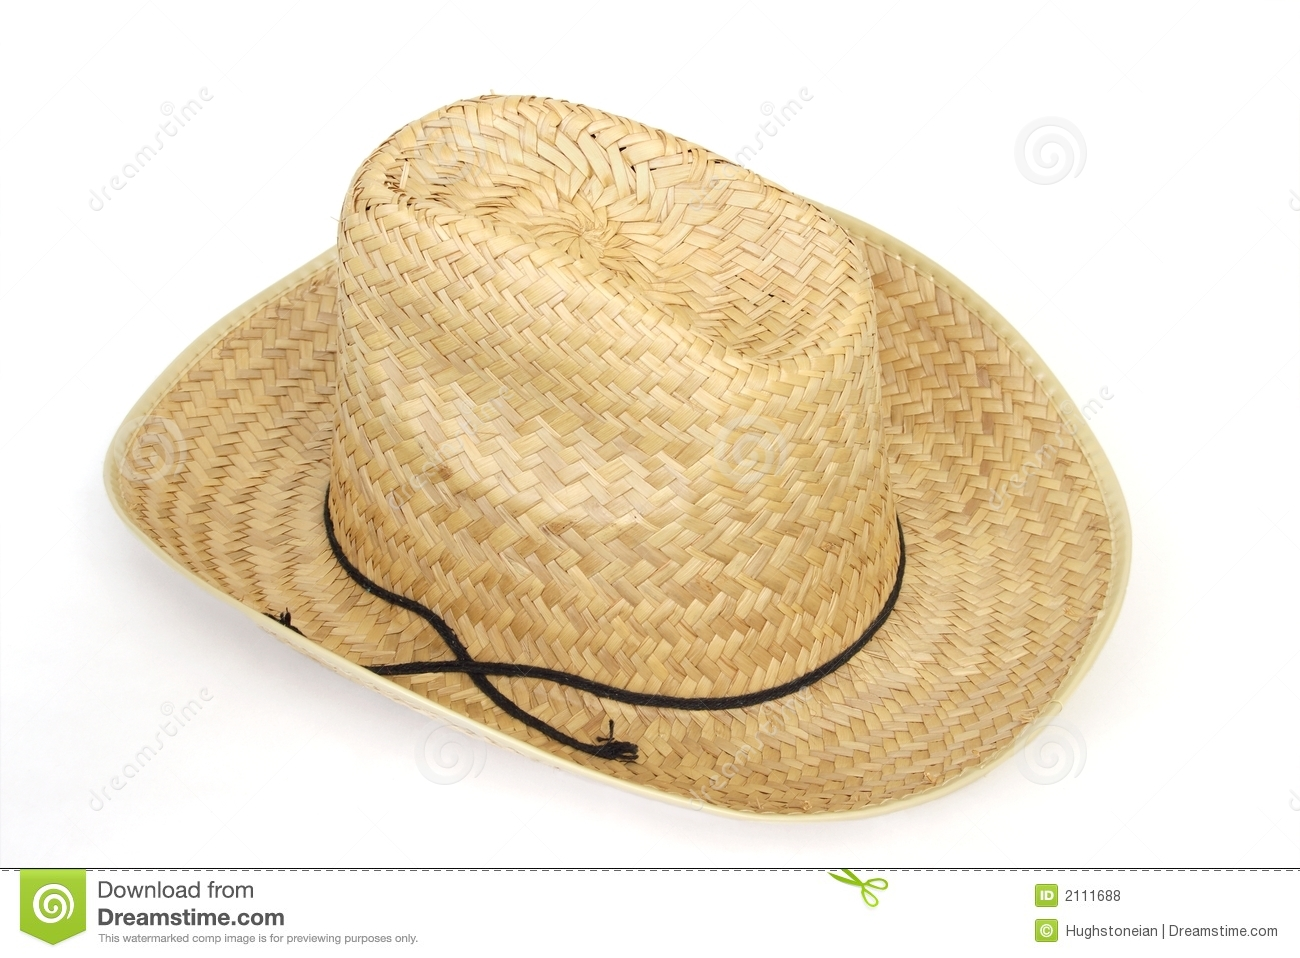 Old Straw Cowboy Farmer Hat Stock Images - Download 119 Royalty Free Photos d3e29d84fb69